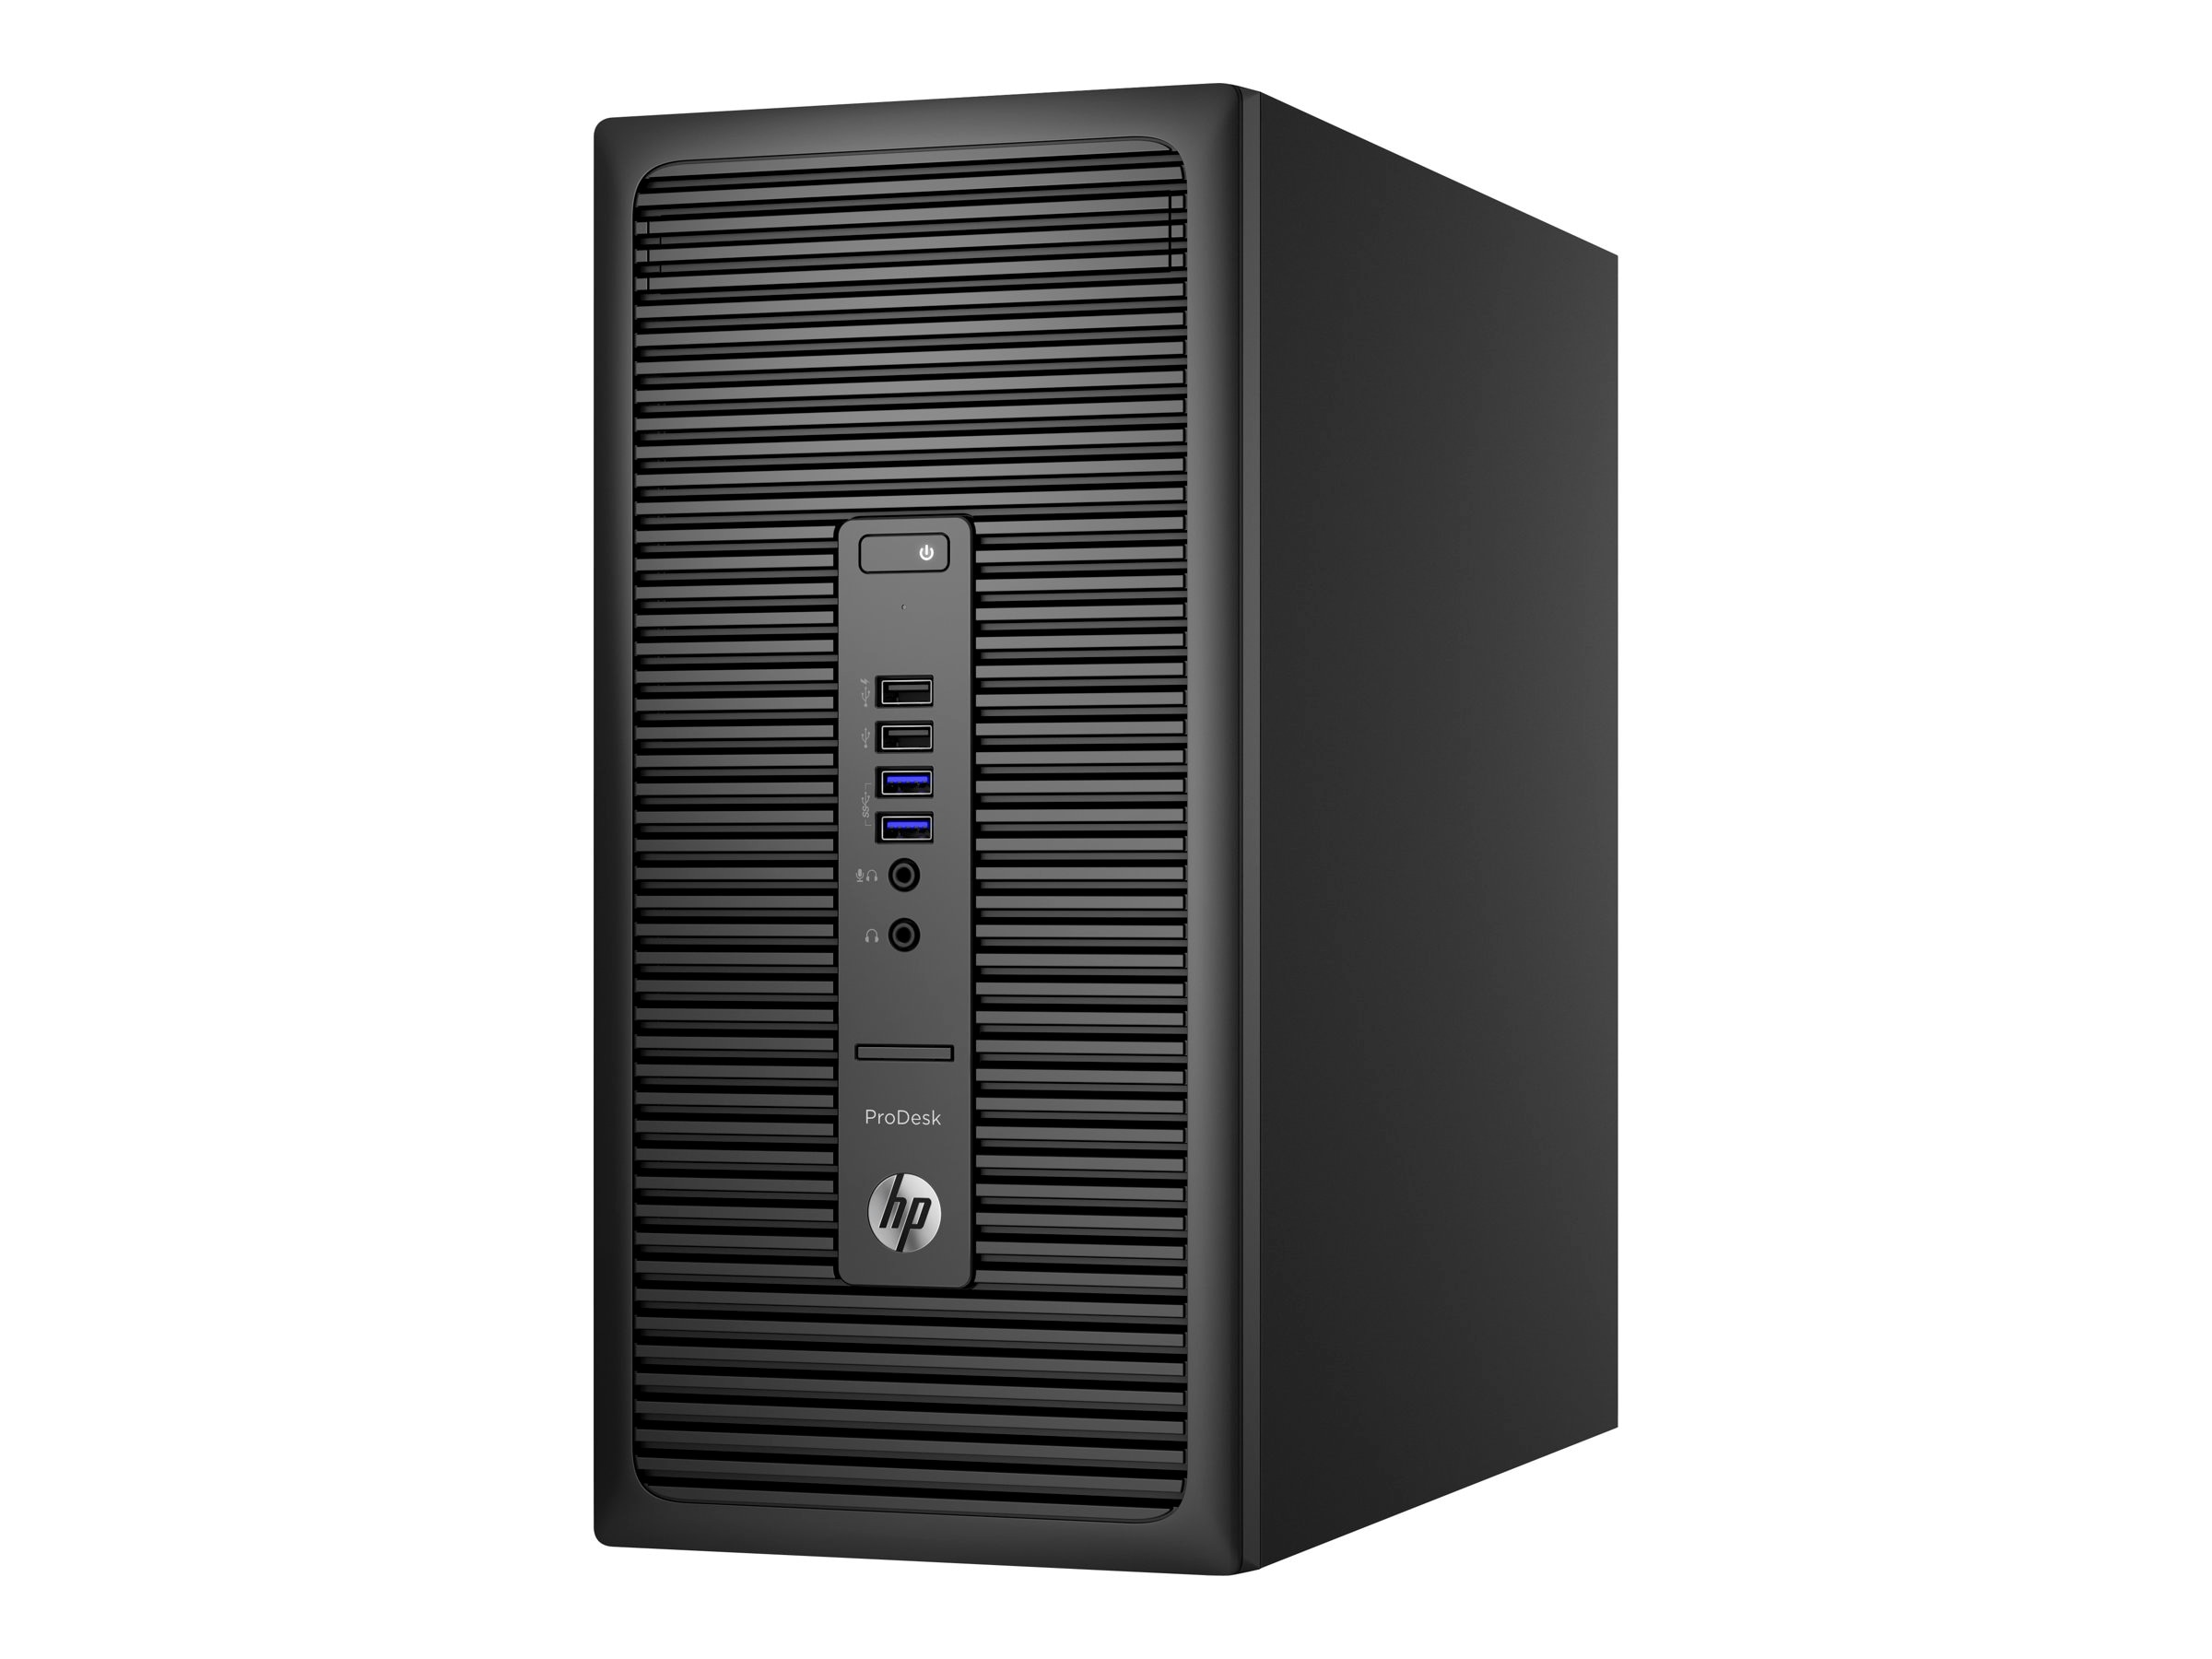 HP ProDesk 600 G2 3.2GHz Core i5 4GB RAM 500GB hard drive